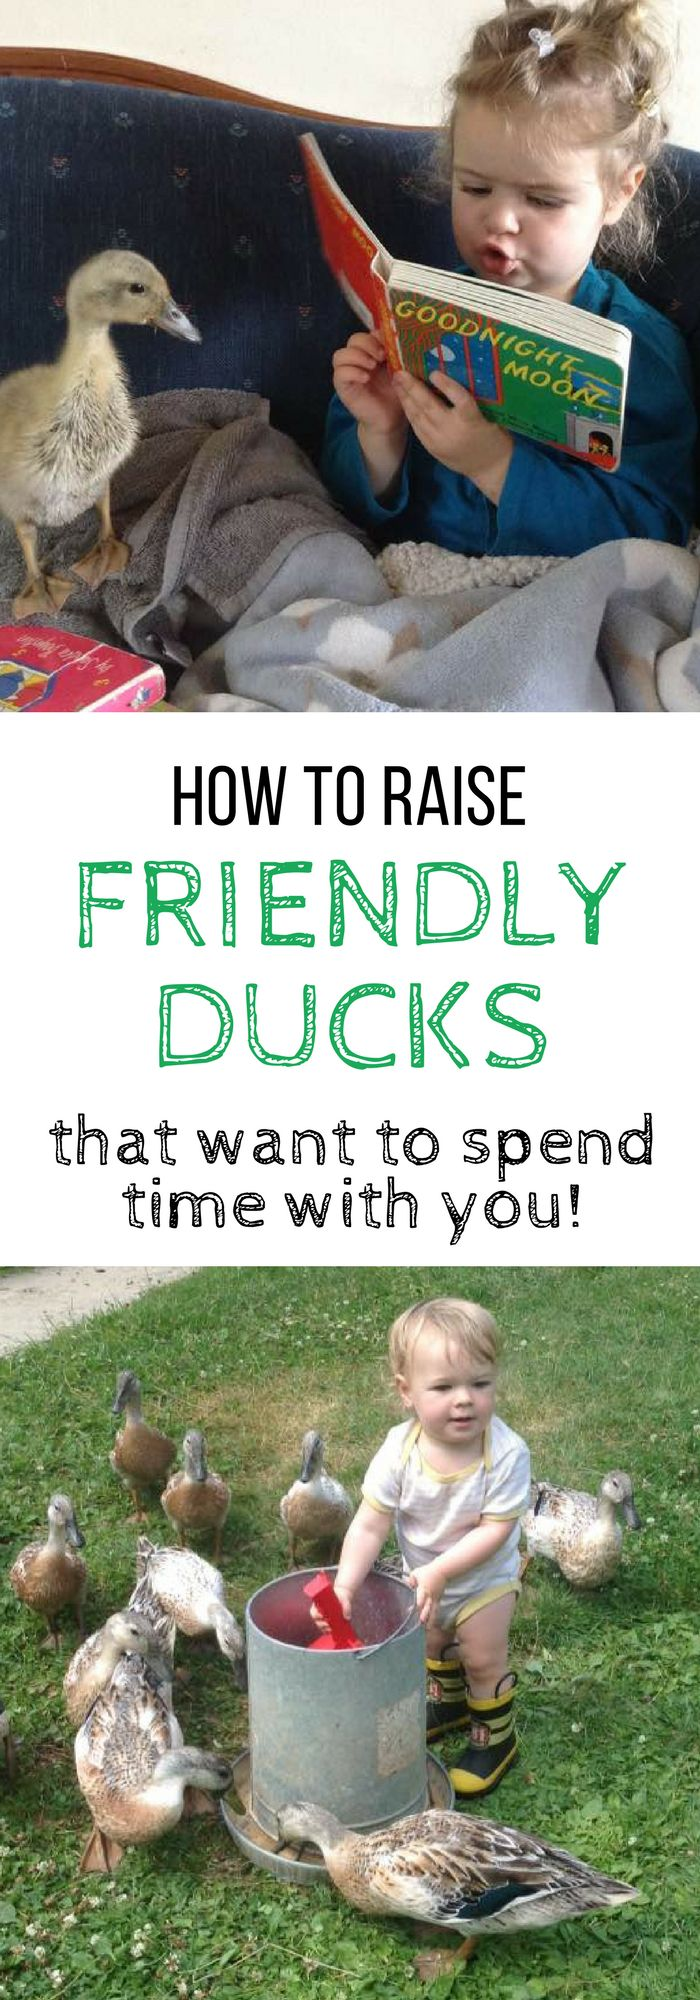 BEST TIPS for raising friendly ducks that actually want to spend time with you and your family! #petchickens